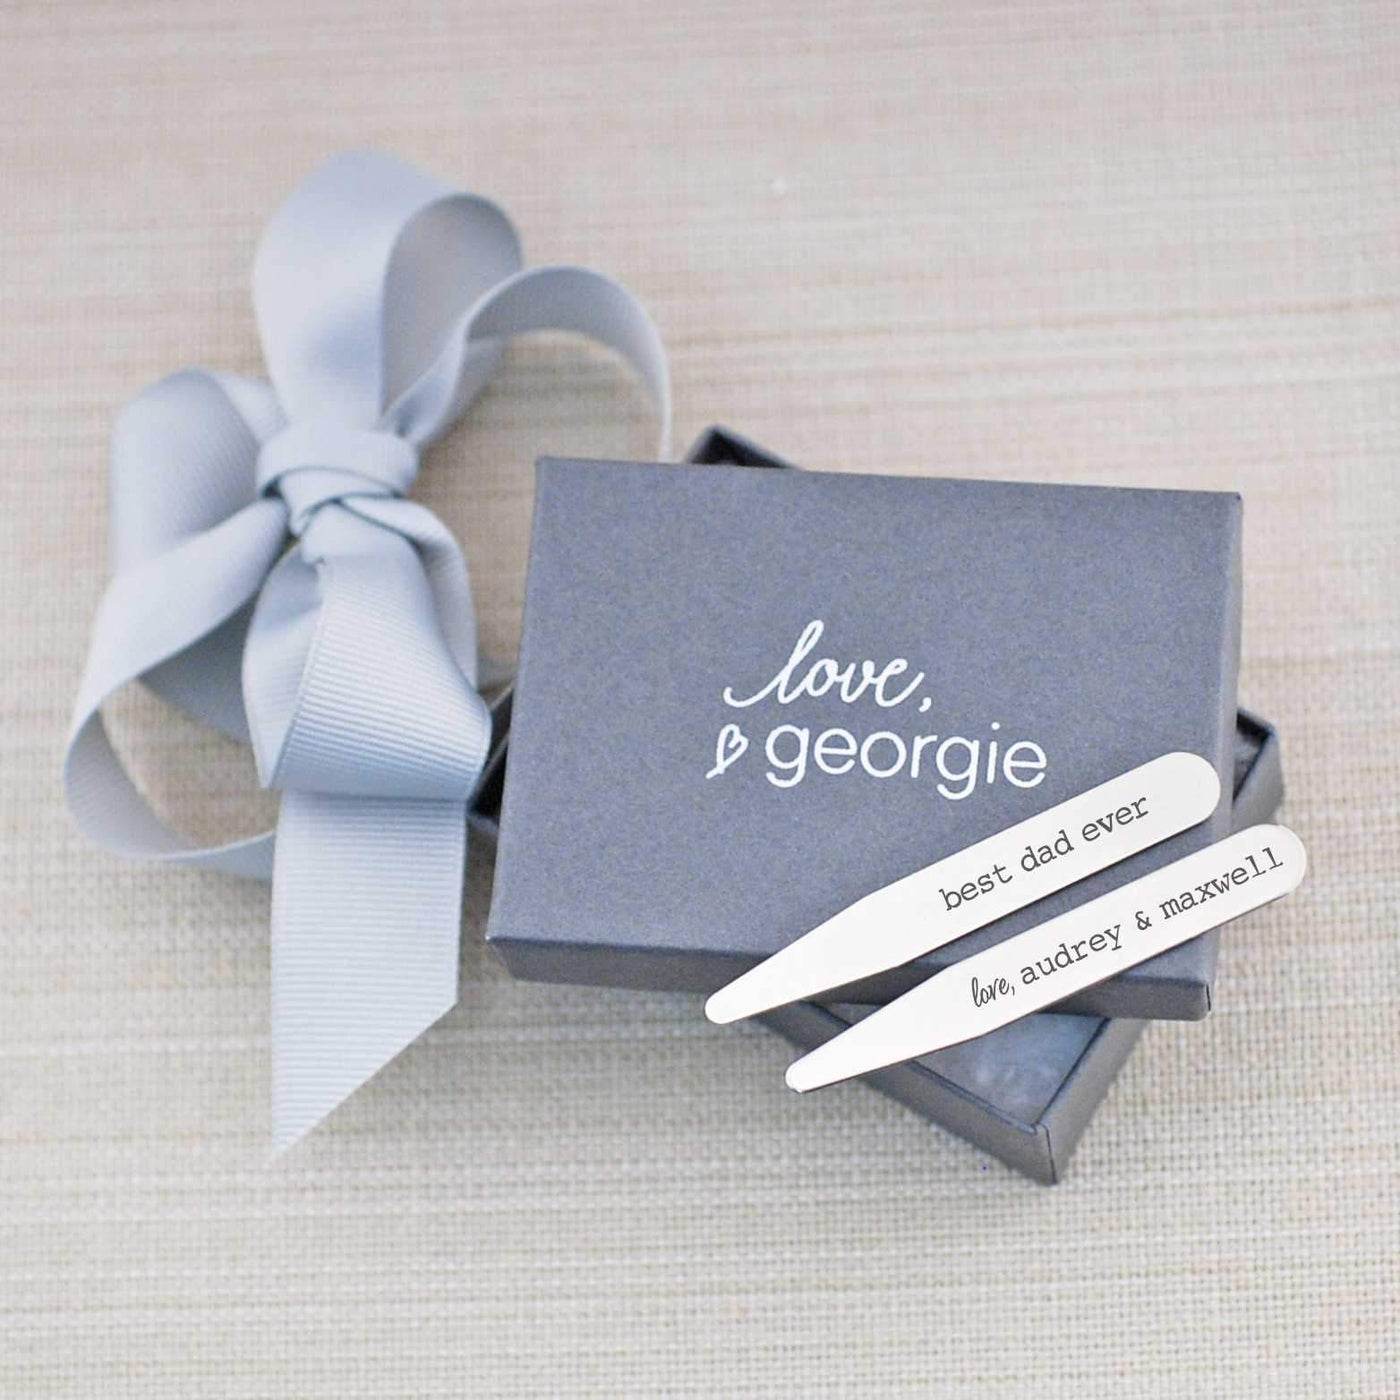 personalized collar stays engraved by Love Georgie, with gift box and ribbon